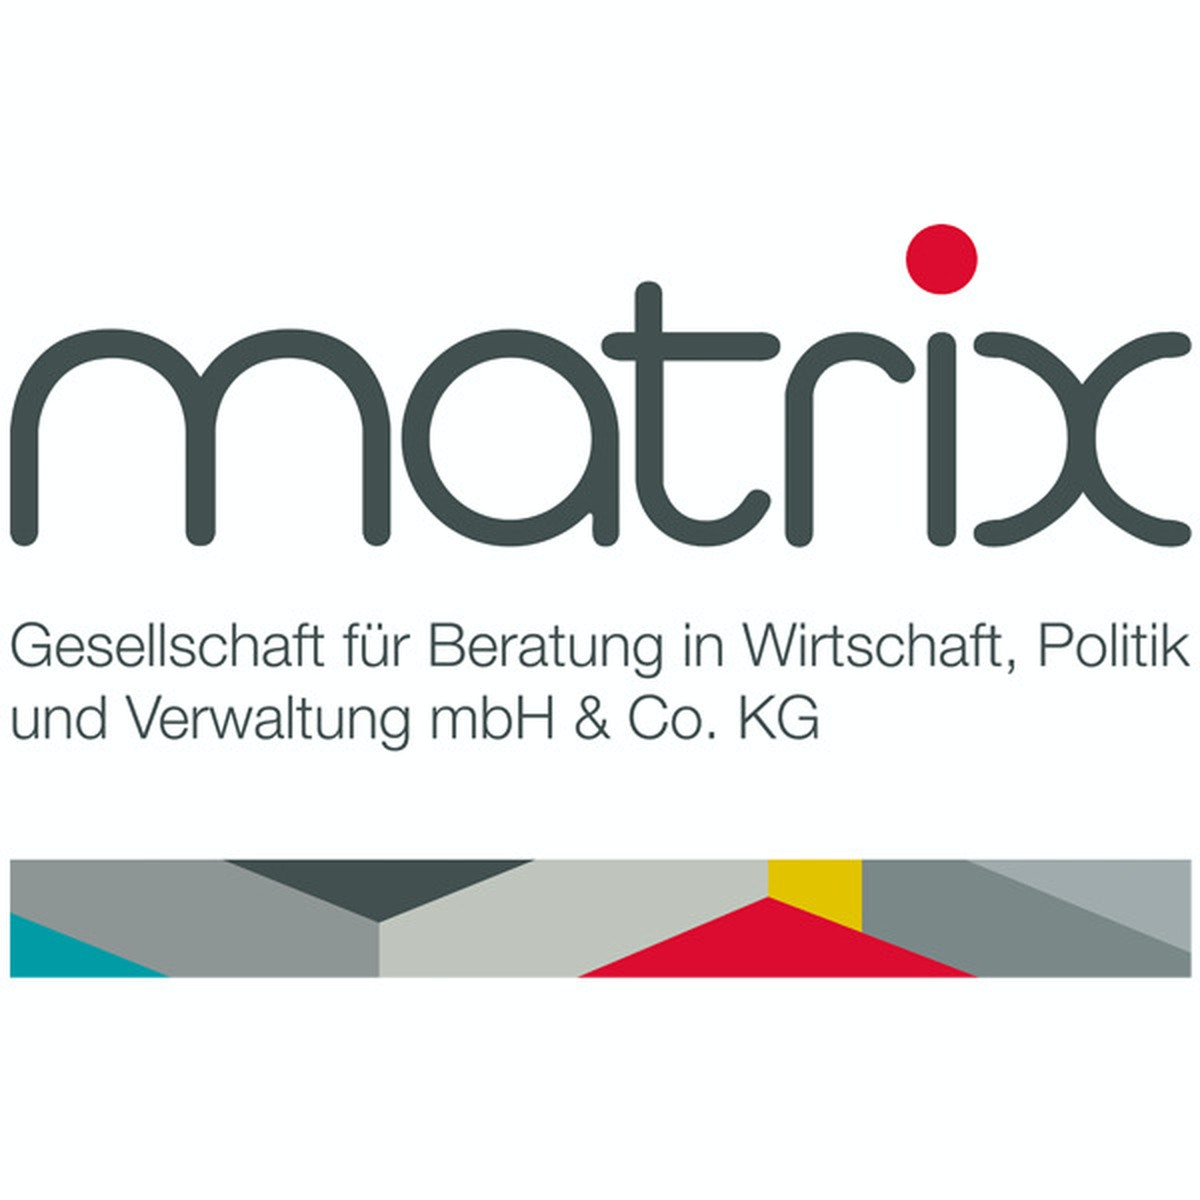 matrix GmbH & Co. KG